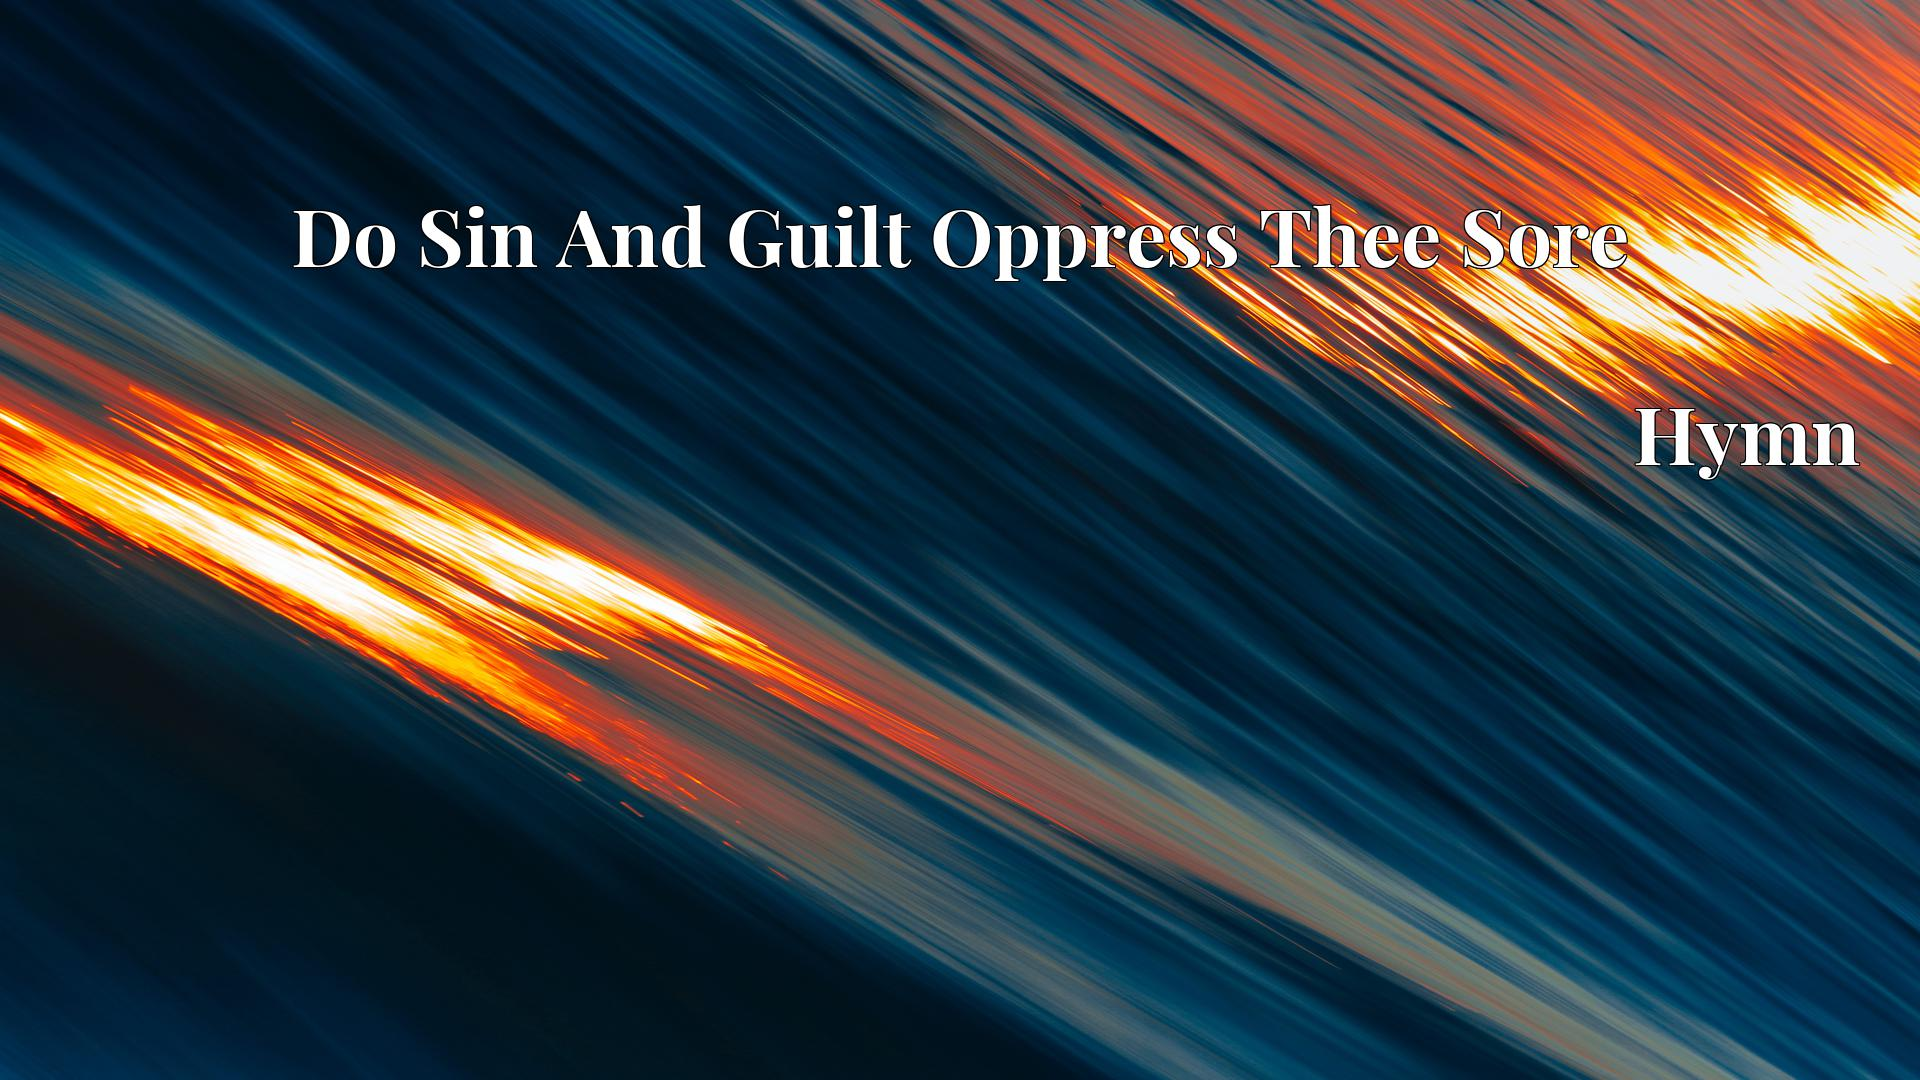 Do Sin And Guilt Oppress Thee Sore - Hymn